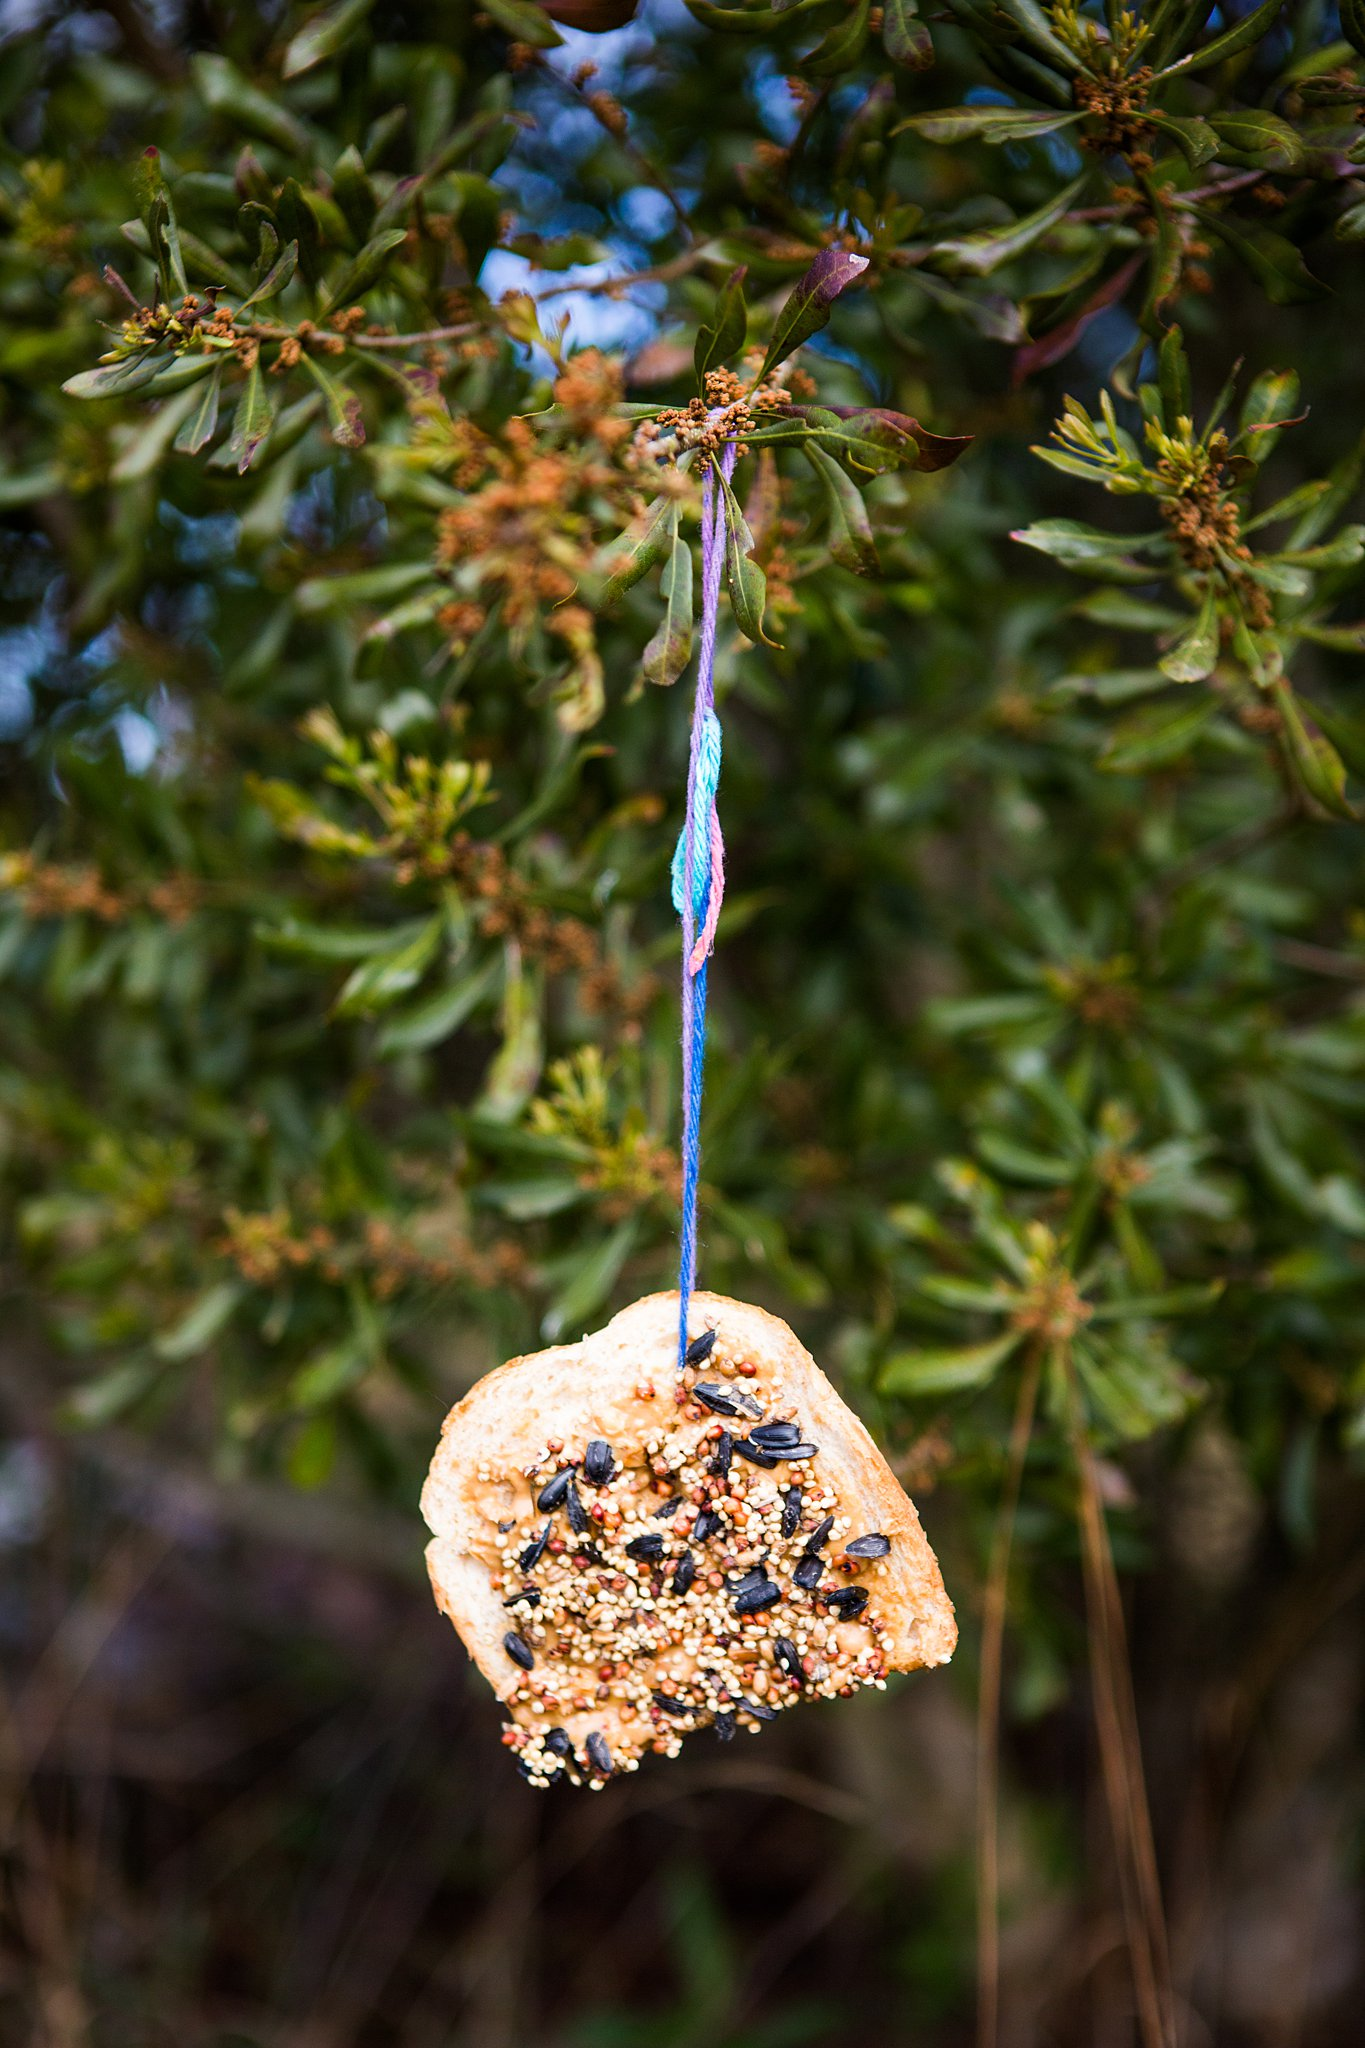 homemade bird feeder hanging on tree